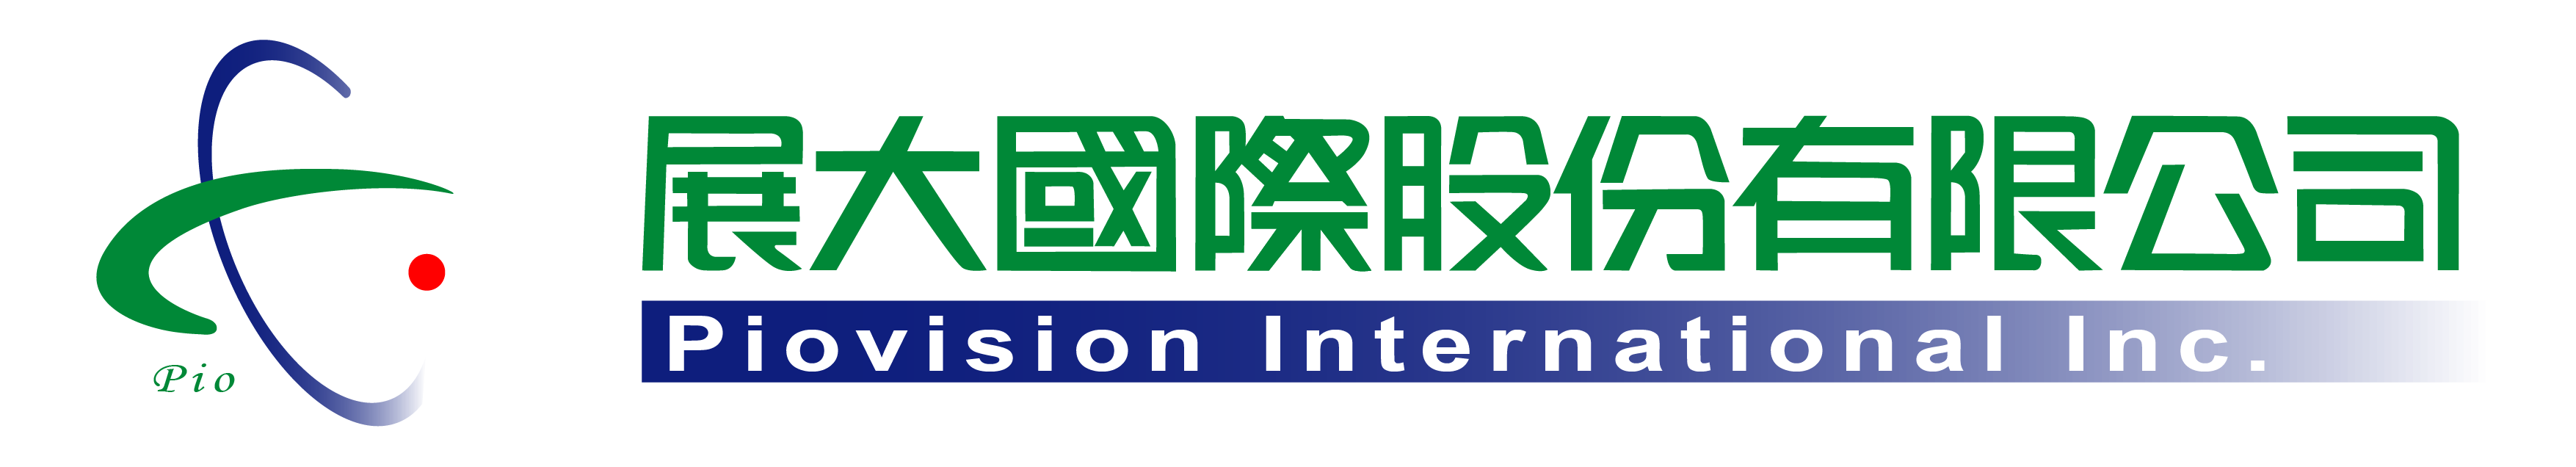 PIOVISION INTERNATIONAL INC.,